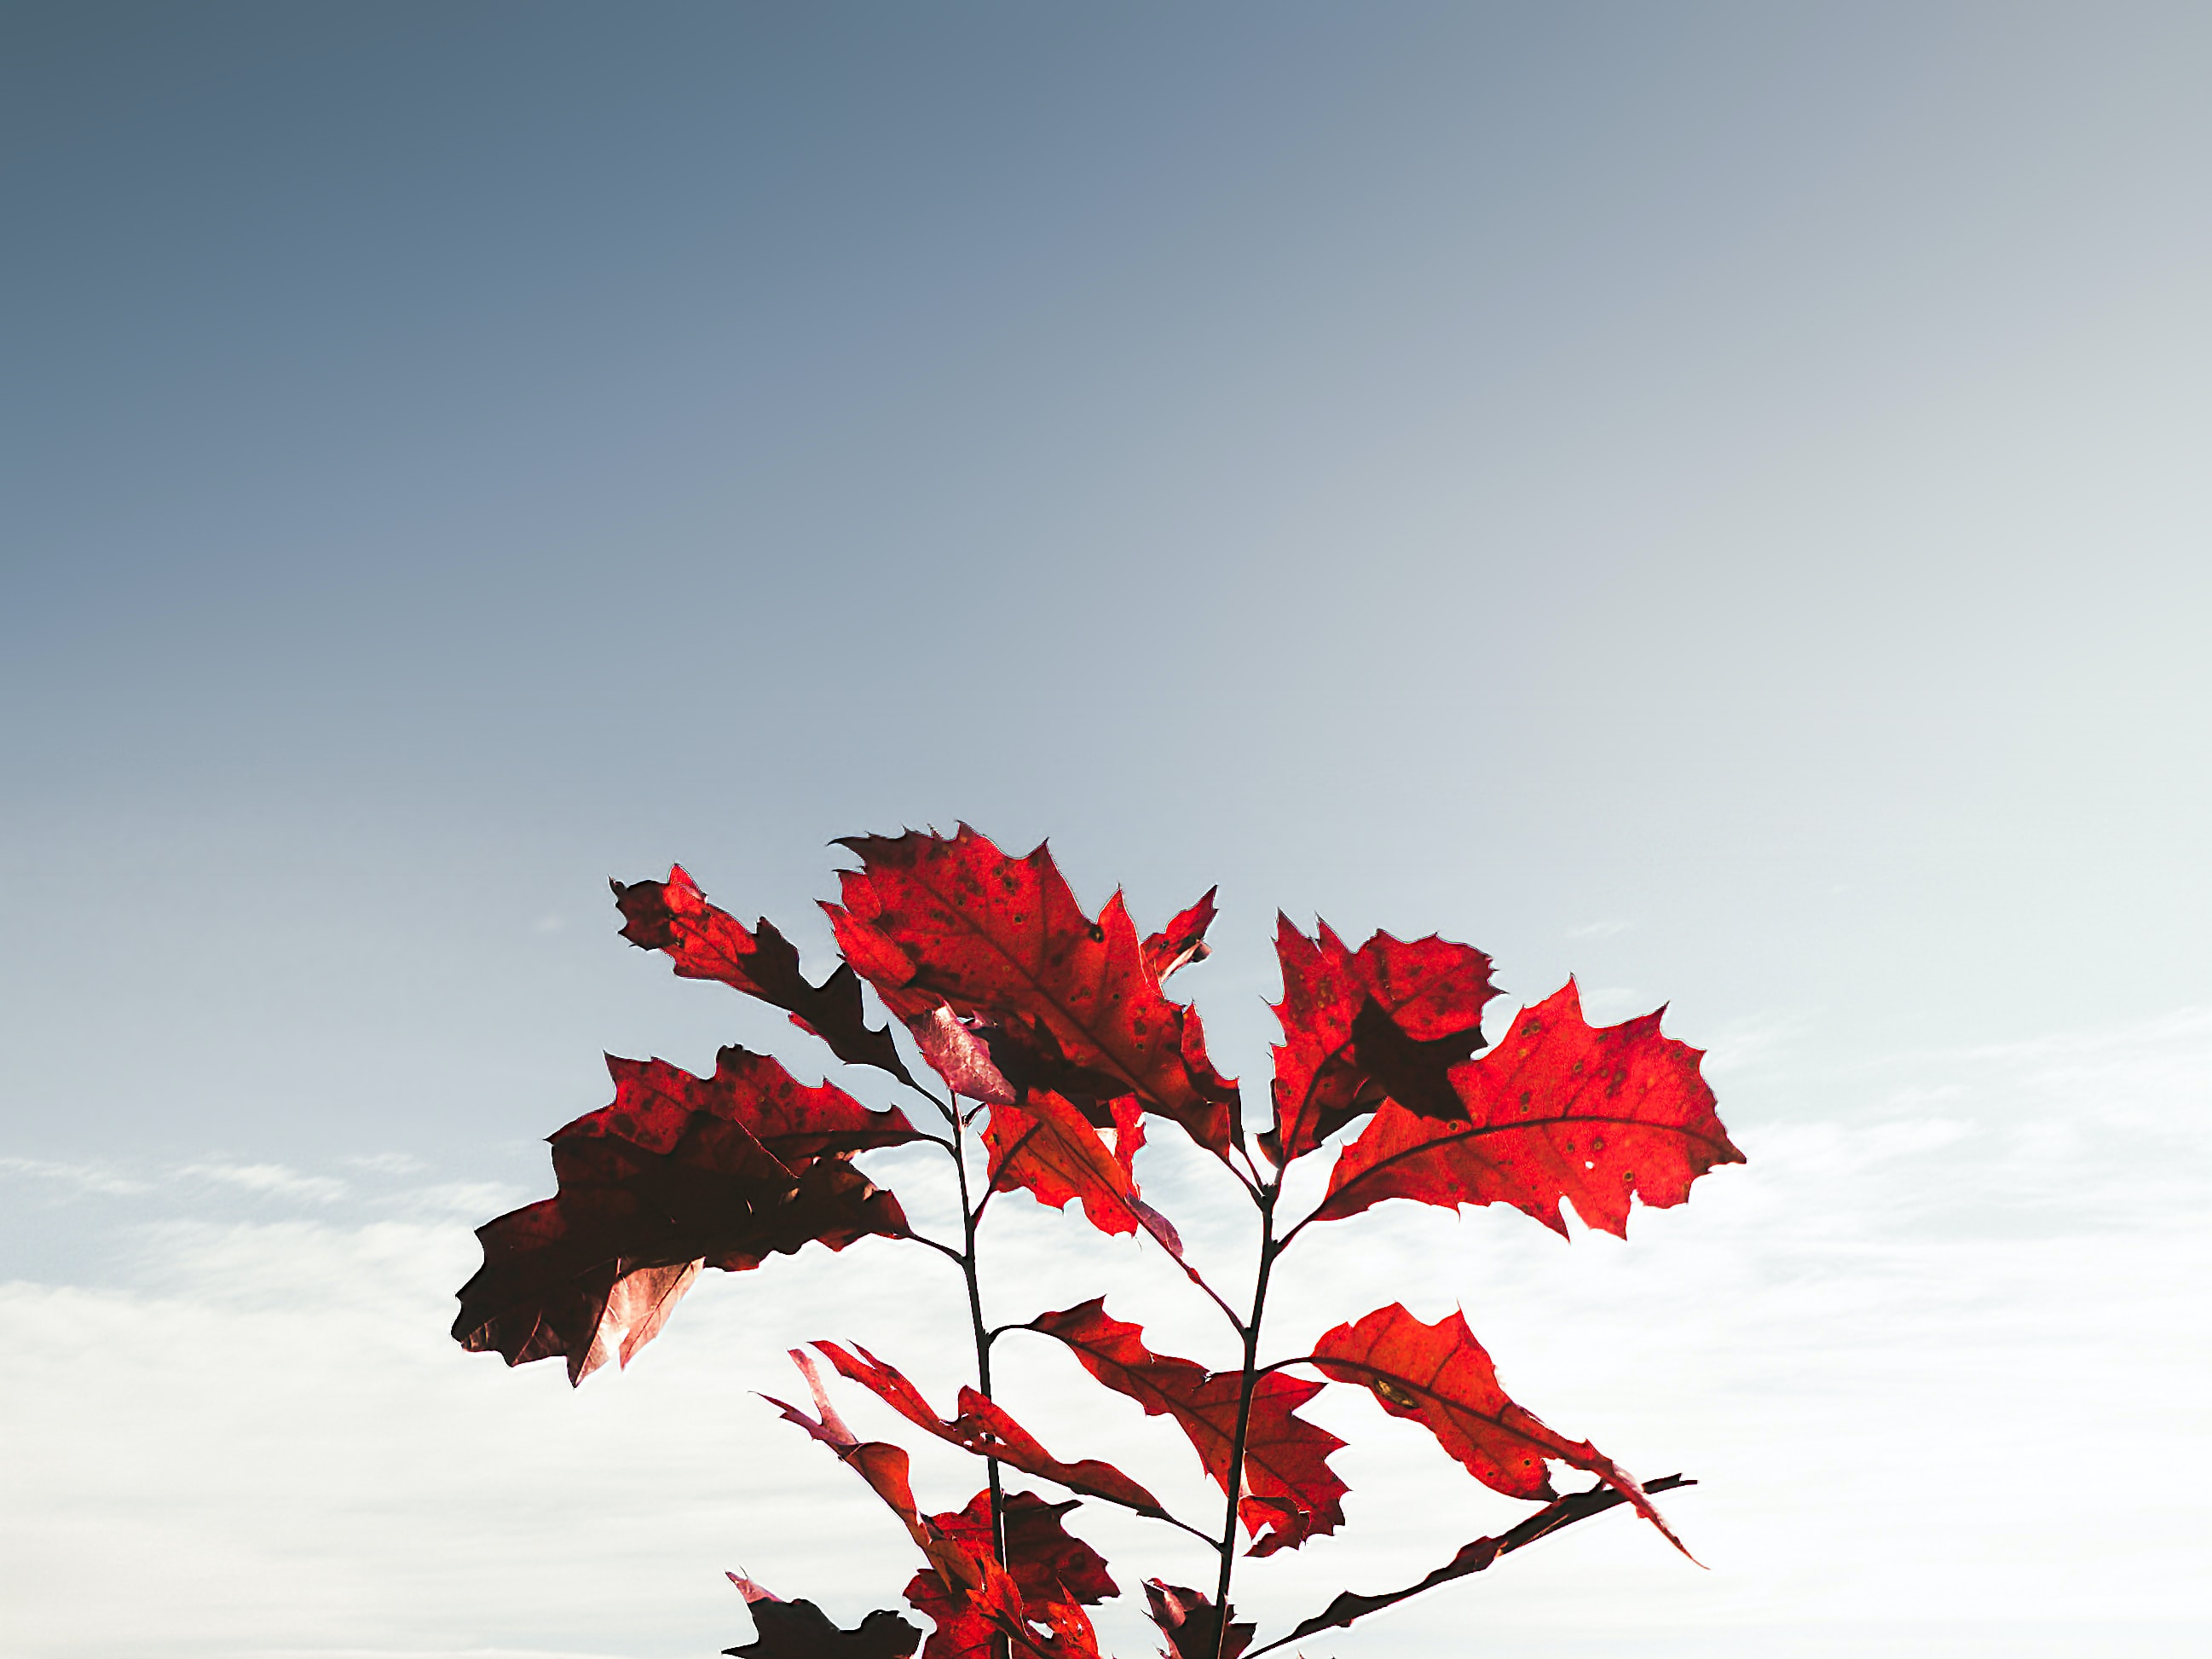 red dried leaves